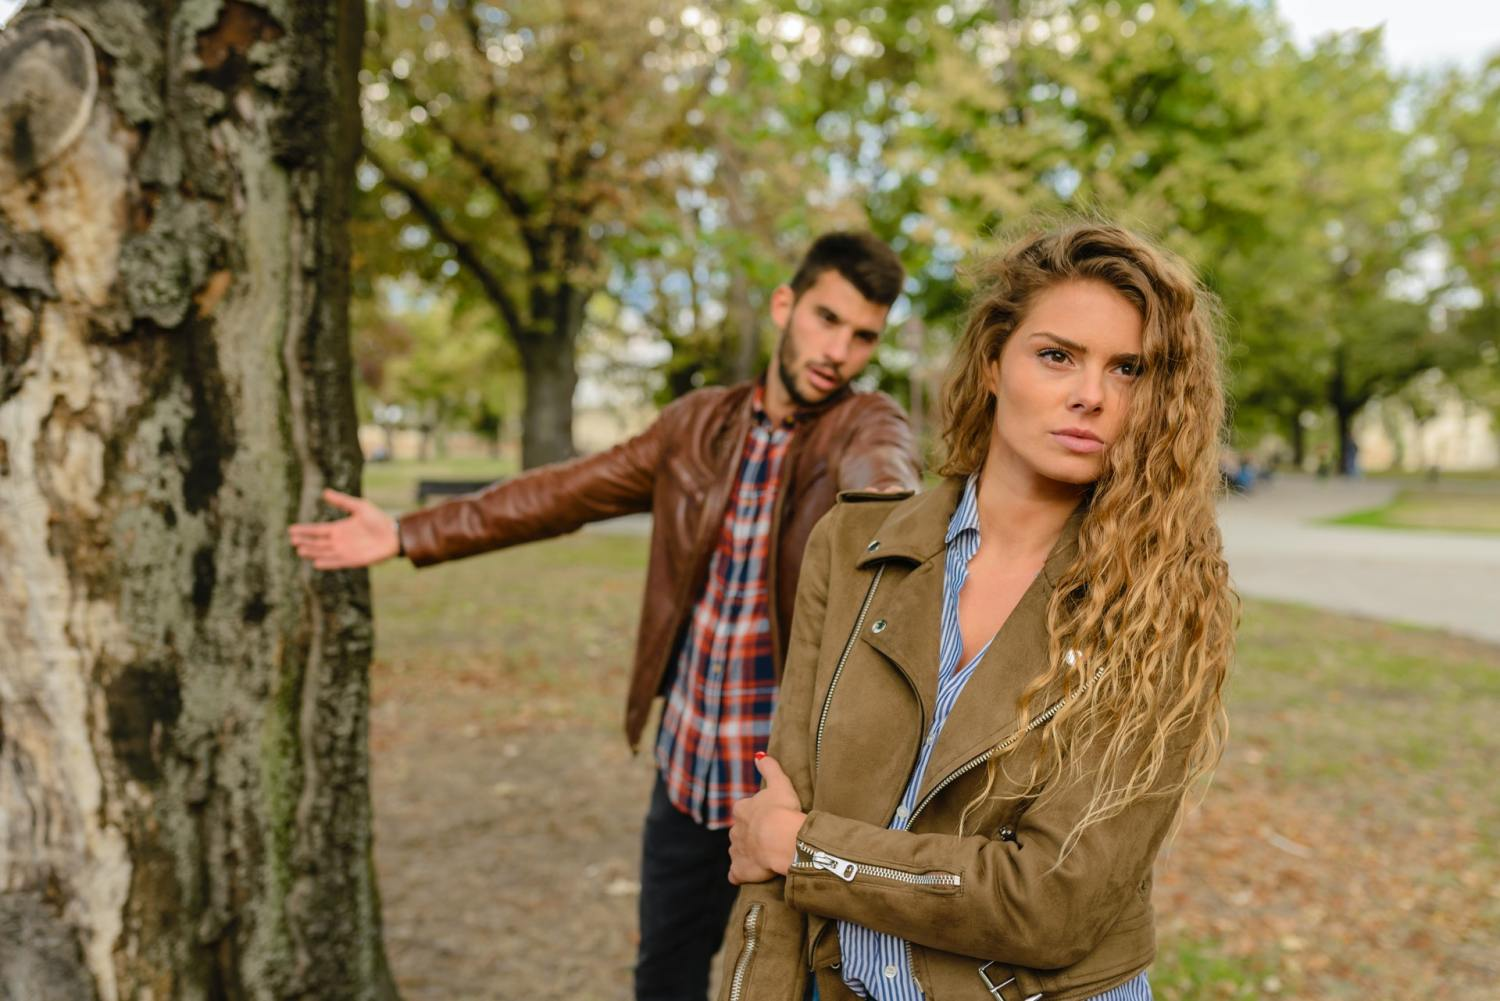 What Everybody Ought To Know About Hookups: The Good And The Bad